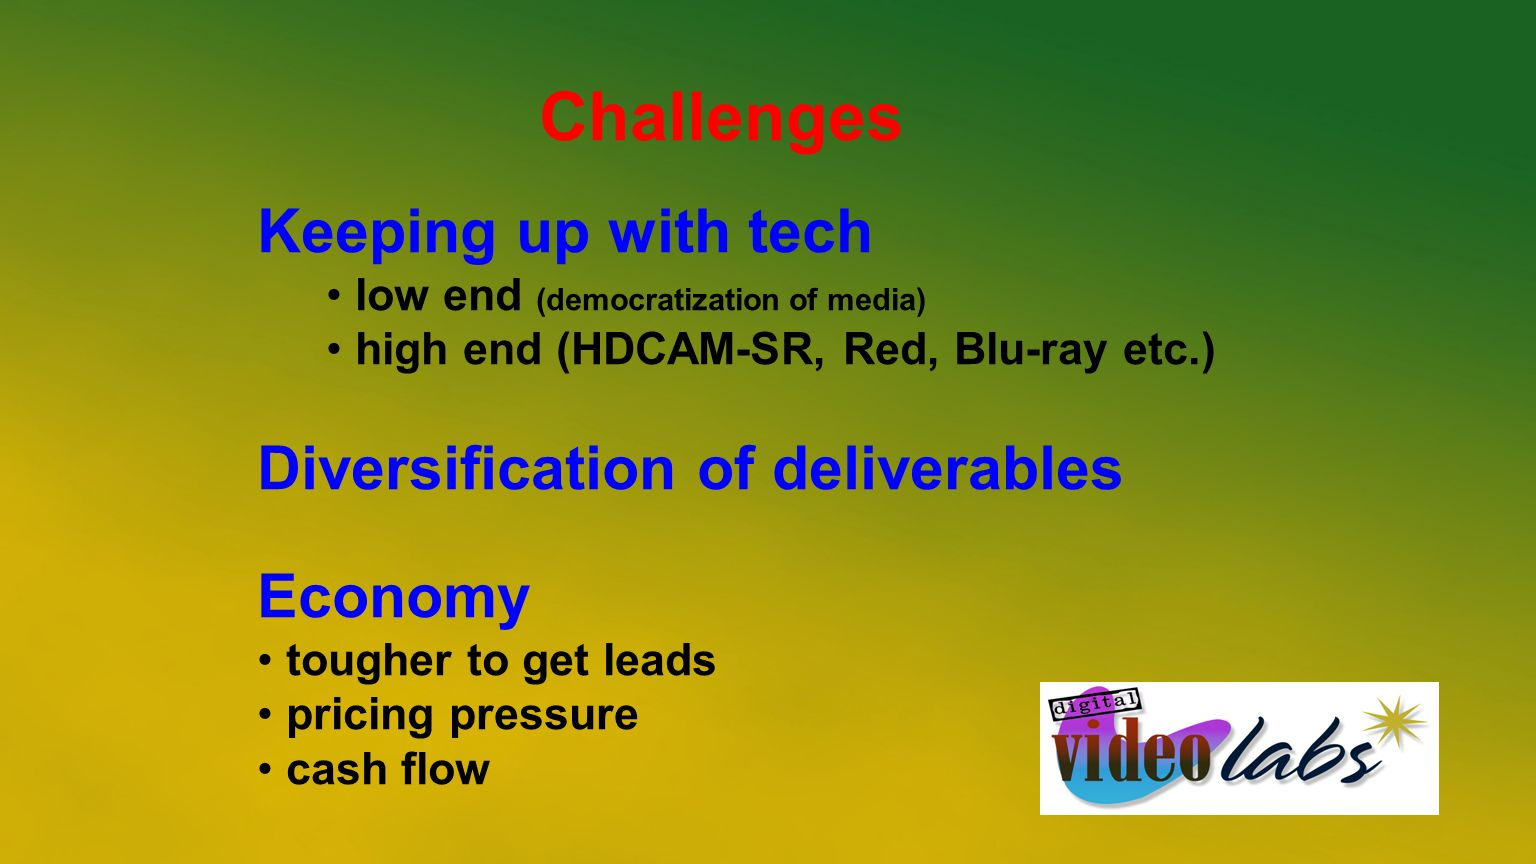 Challenges Keeping up with tech low end (democratization of media) high end (HDCAM-SR, Red, Blu-ray etc.) Diversification of deliverables Economy toug